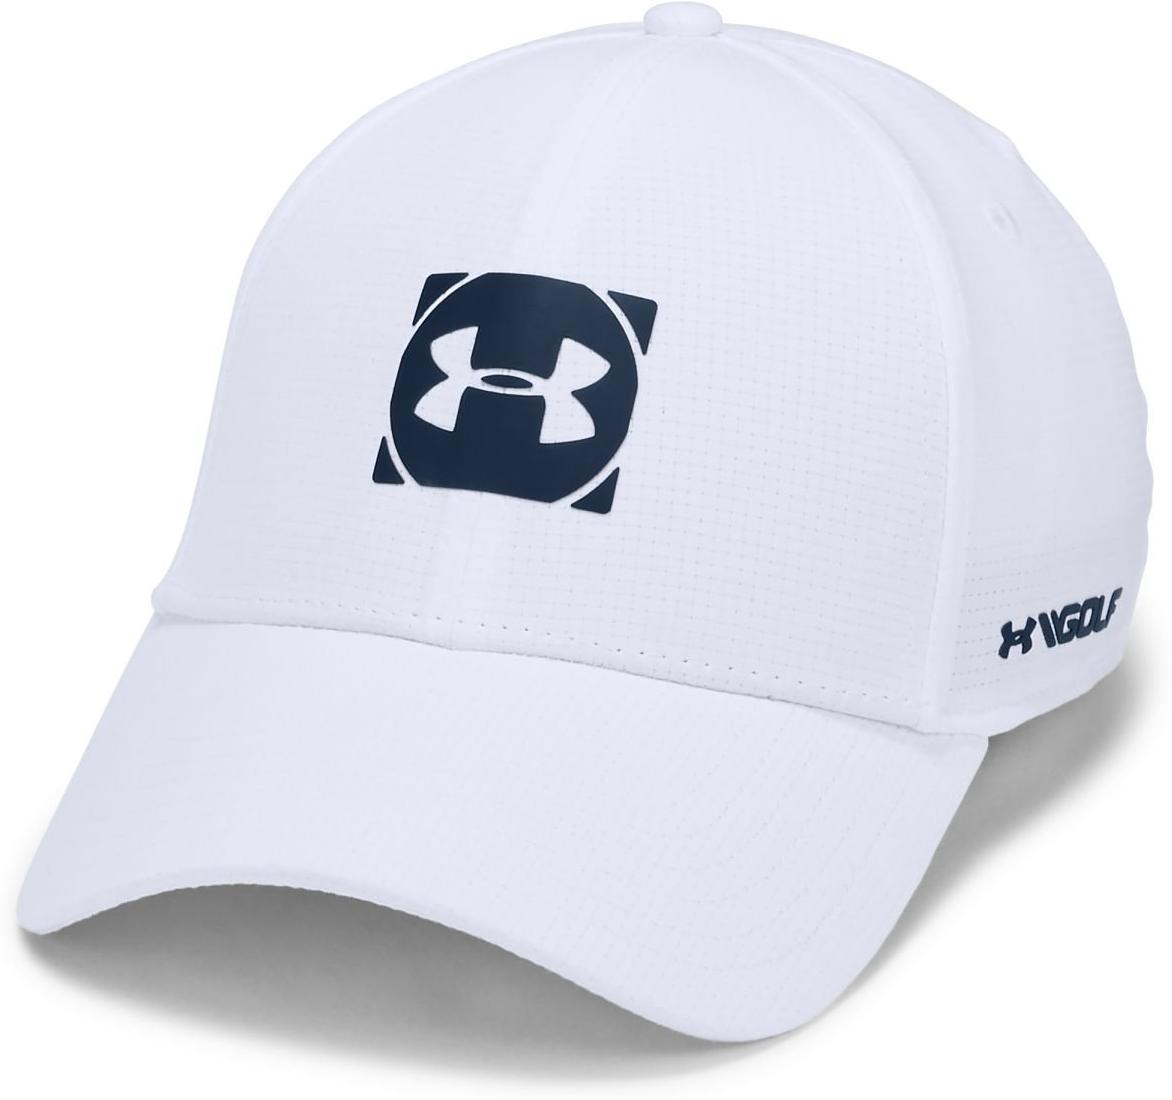 Cap Under Armour Men s Official Tour Cap 3.0